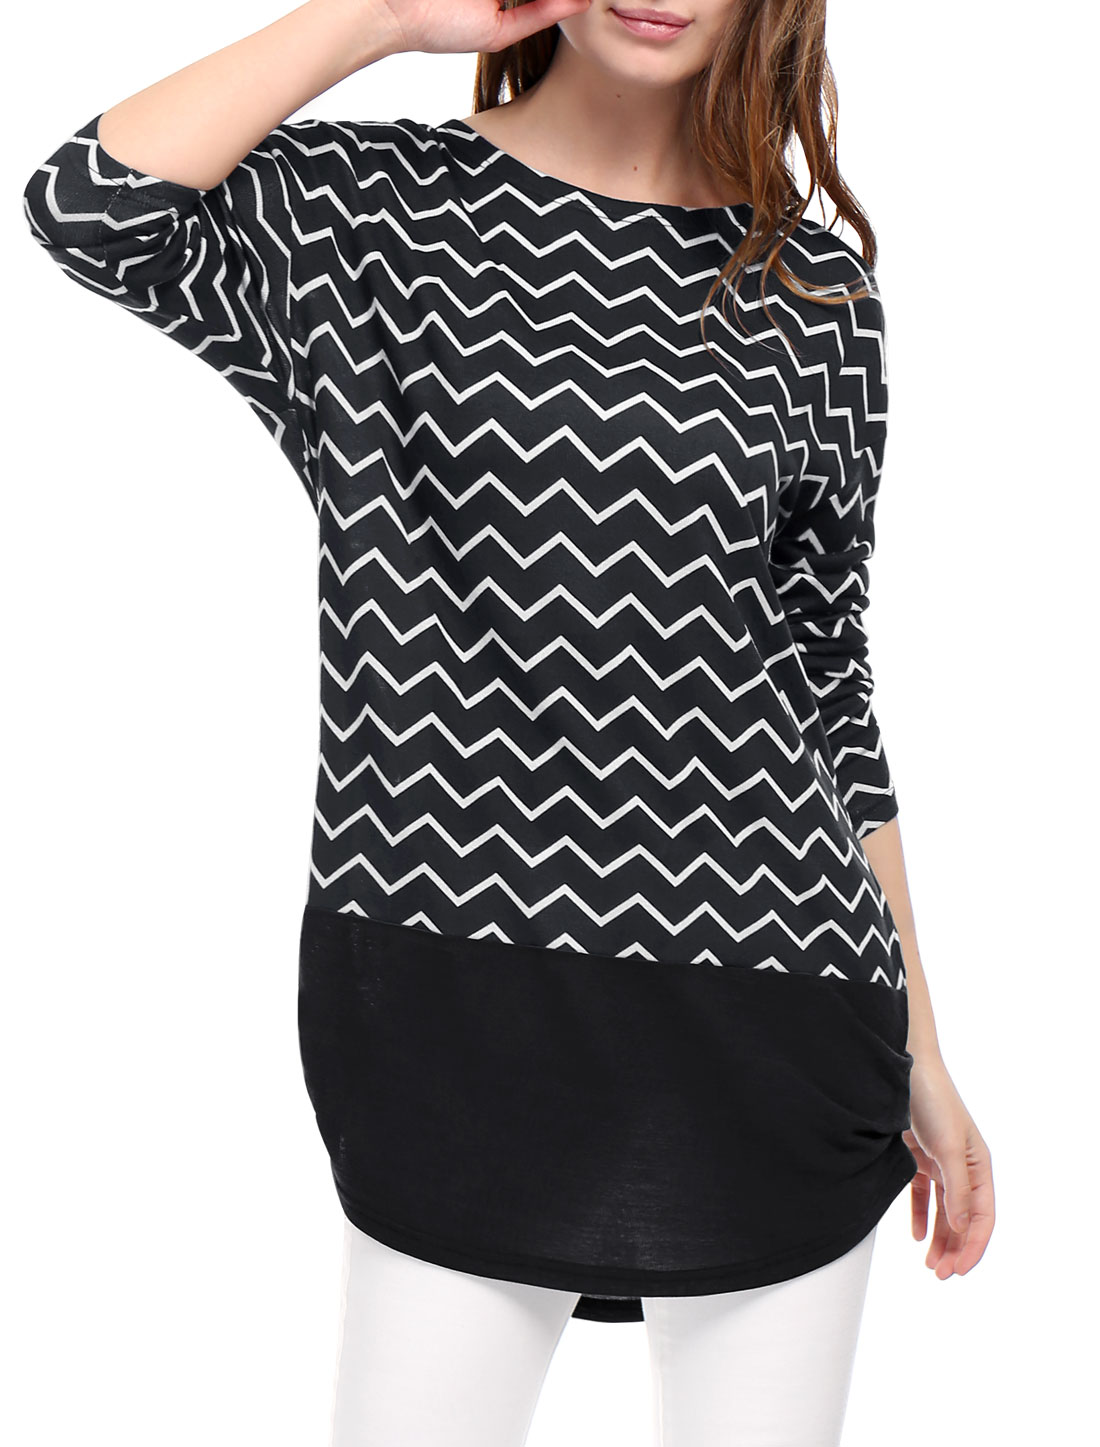 Women Long Sleeves Ruched Sides Chevron Loose Tunic Top Black S